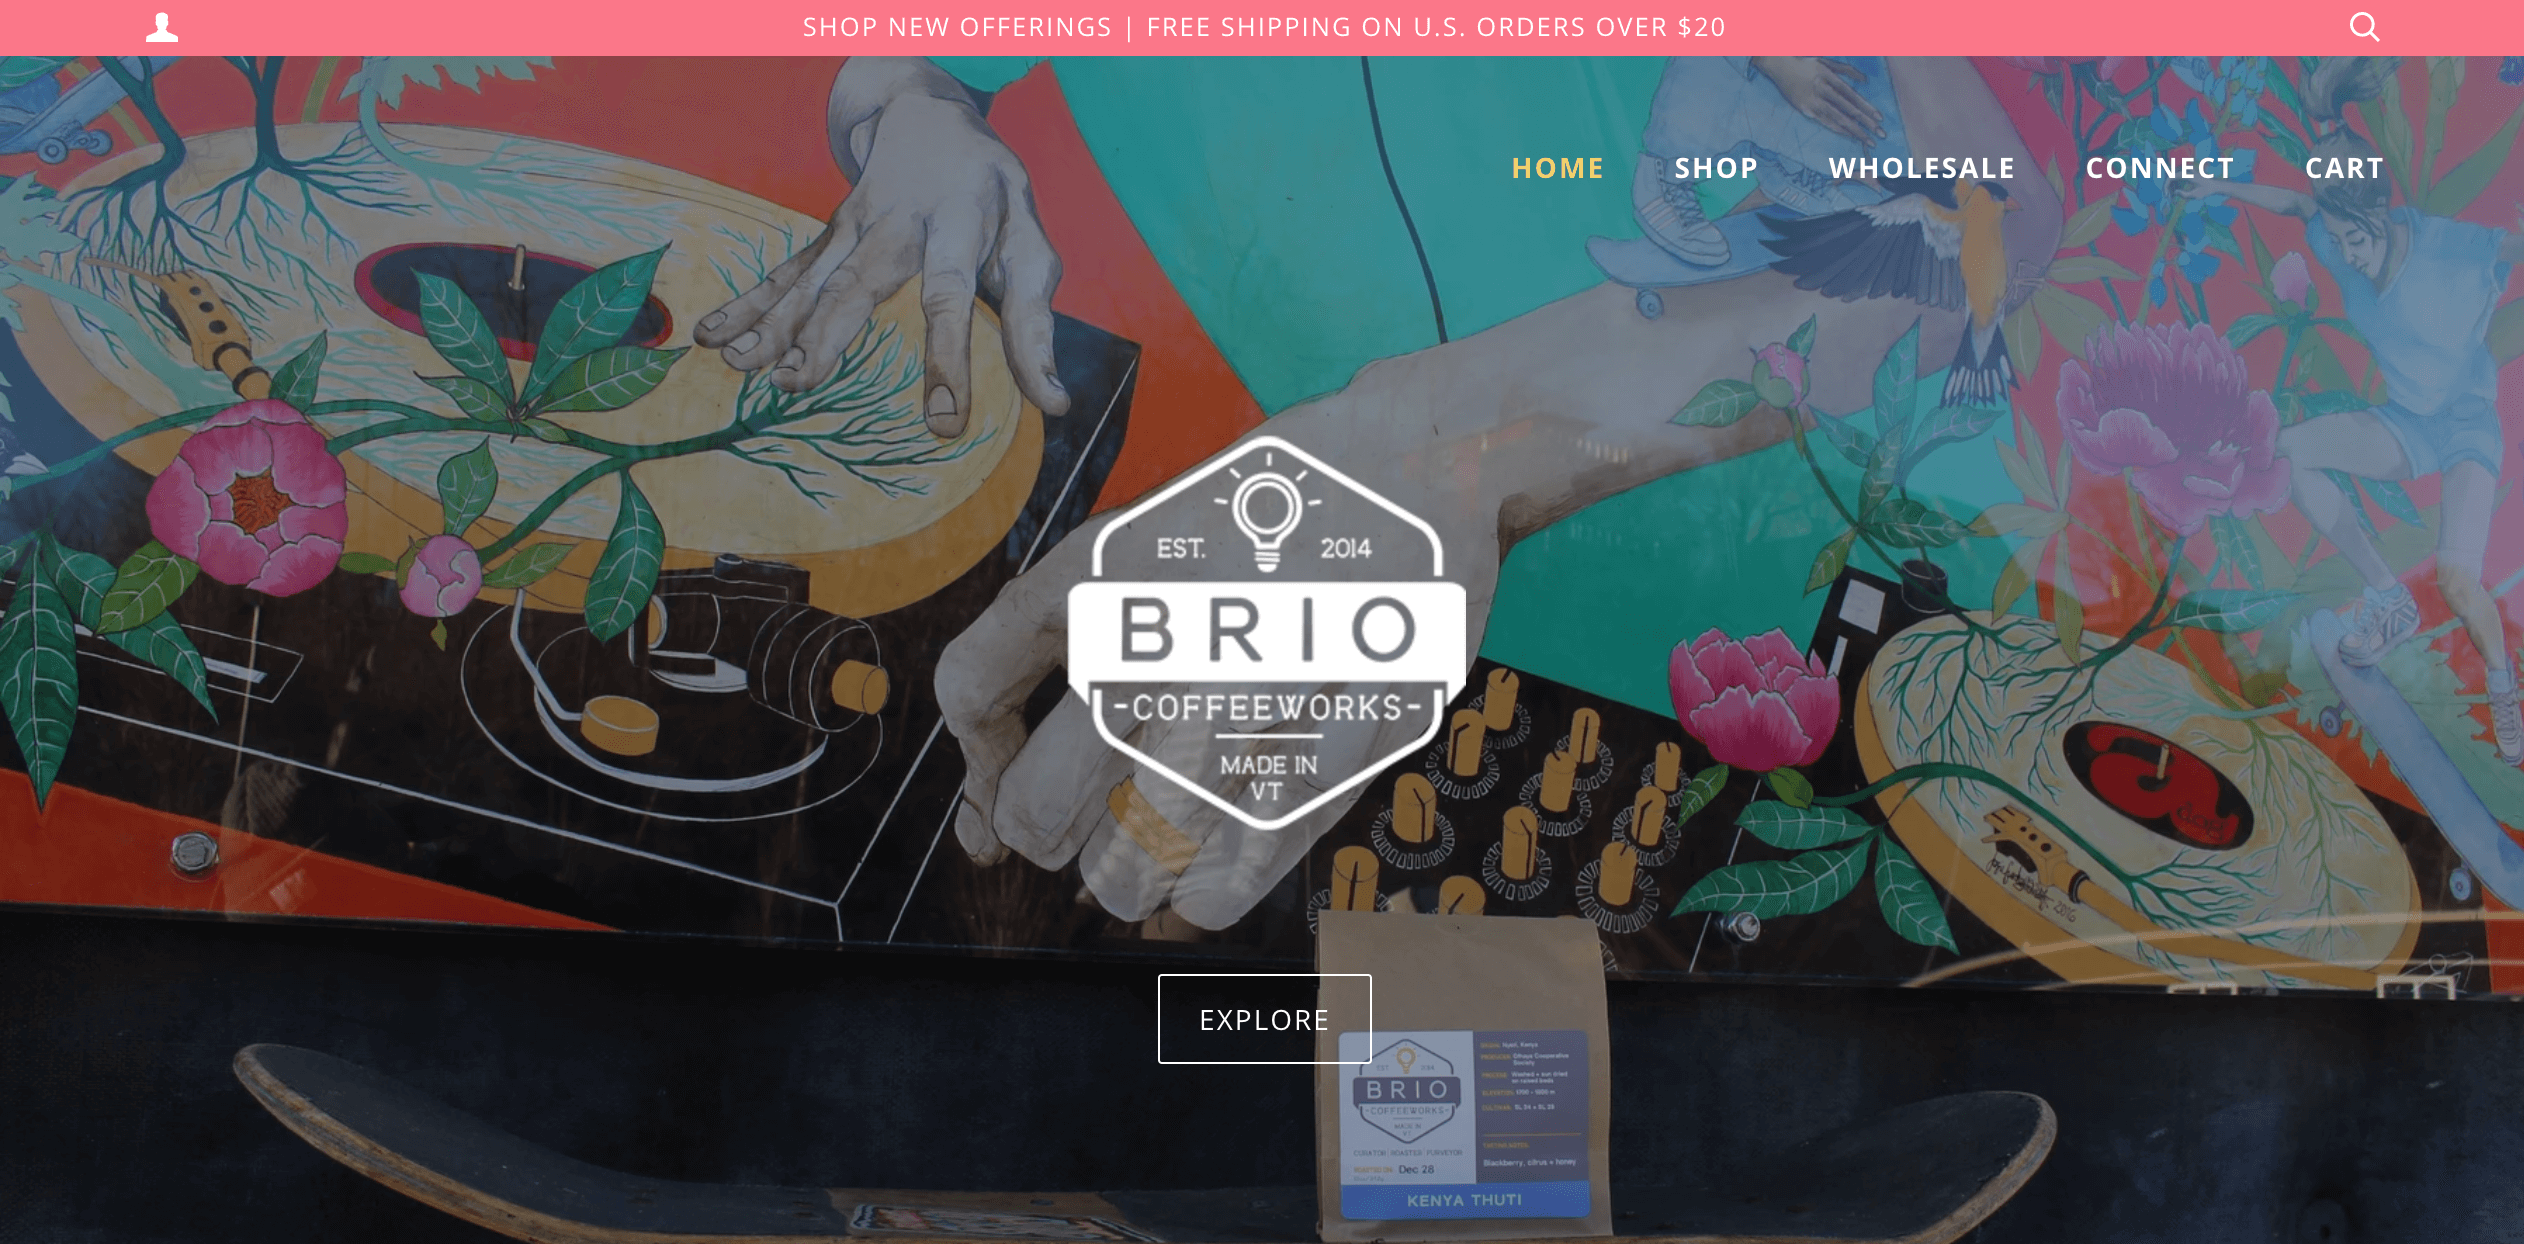 Brio coffeeworks shopify recharge connection by littledata